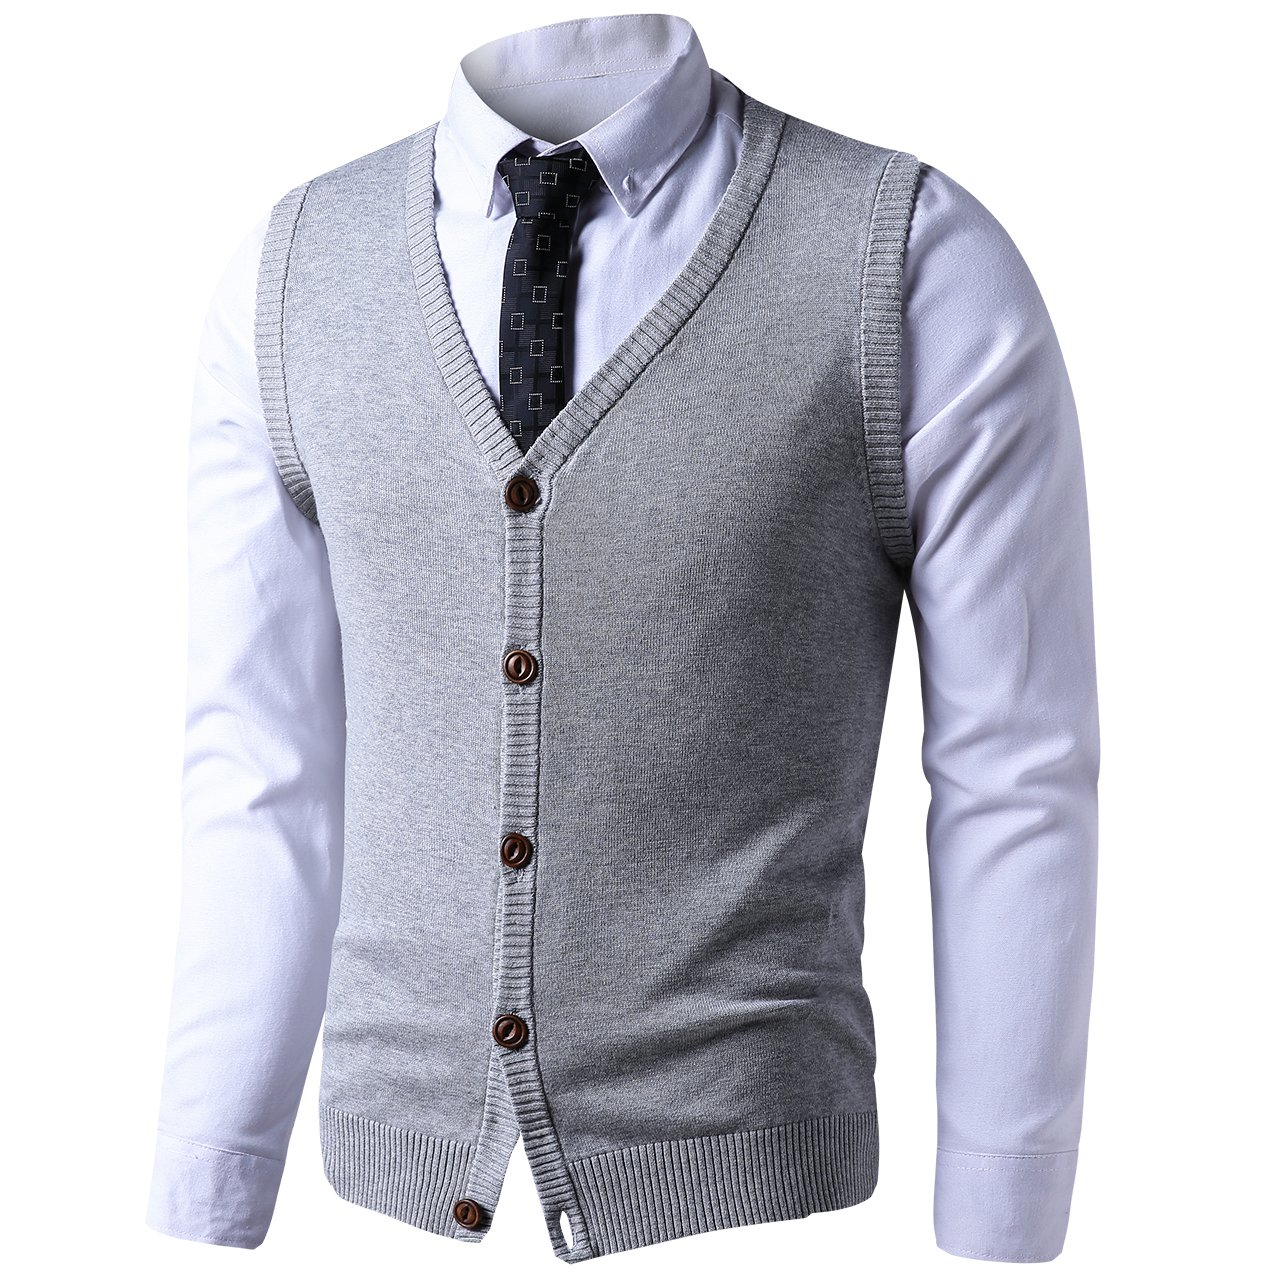 LTIFONE Mens Button Down Sweater Vest Basic Plain Short Sleeve Sweater Cardigan Sweaters Slim Fit with Ribbing Edge(Grey,L)